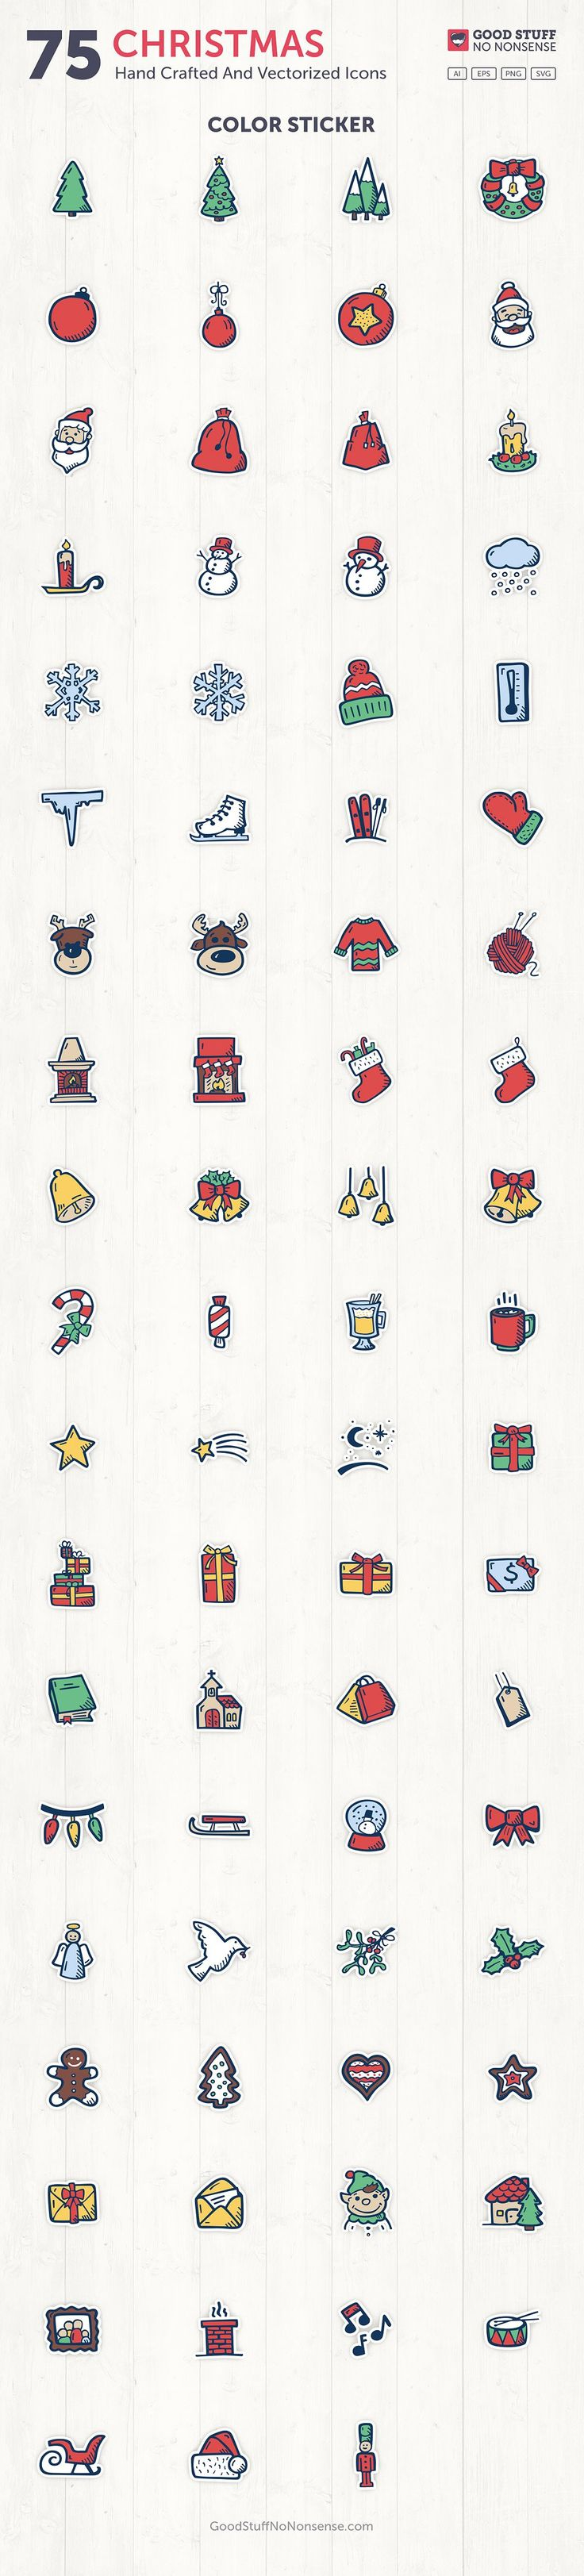 Christmas Hand Drawn Icons Basic icon, flaticon, icons